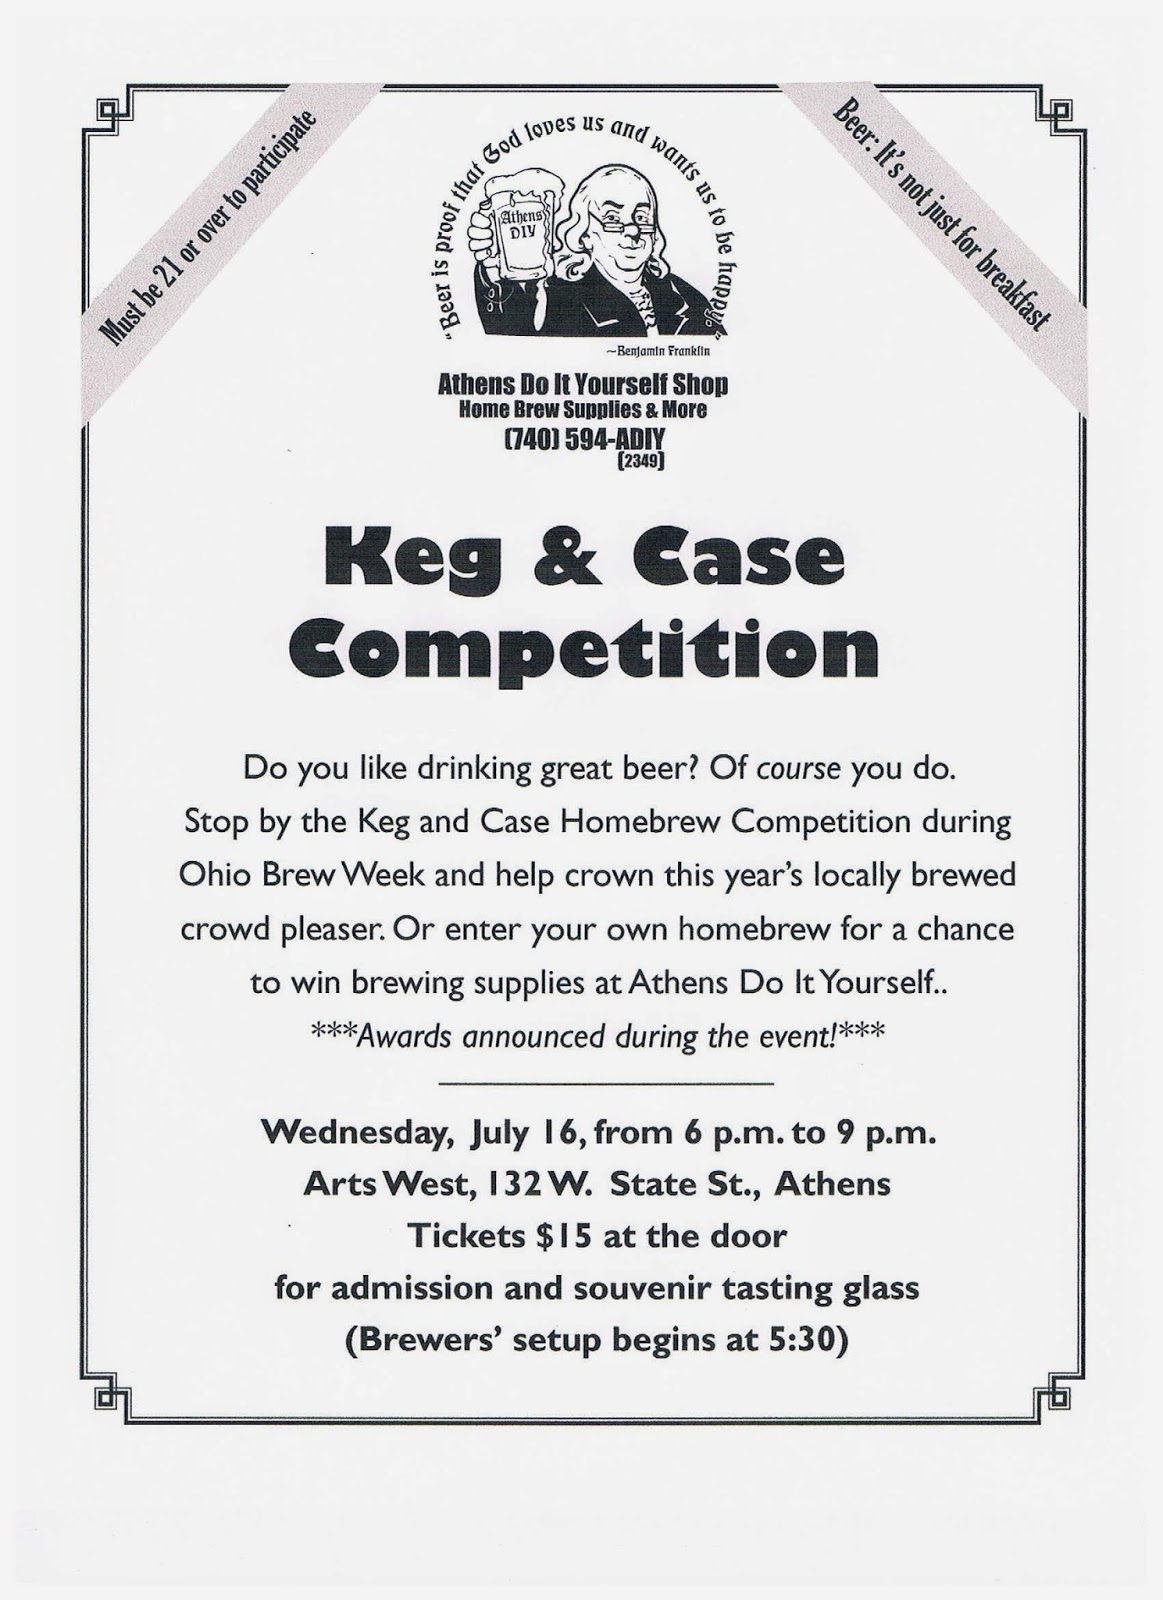 Artswest athens community gateway to the arts athens do it athens do it yourself shop presents their annual keg case homebrew competition solutioingenieria Choice Image